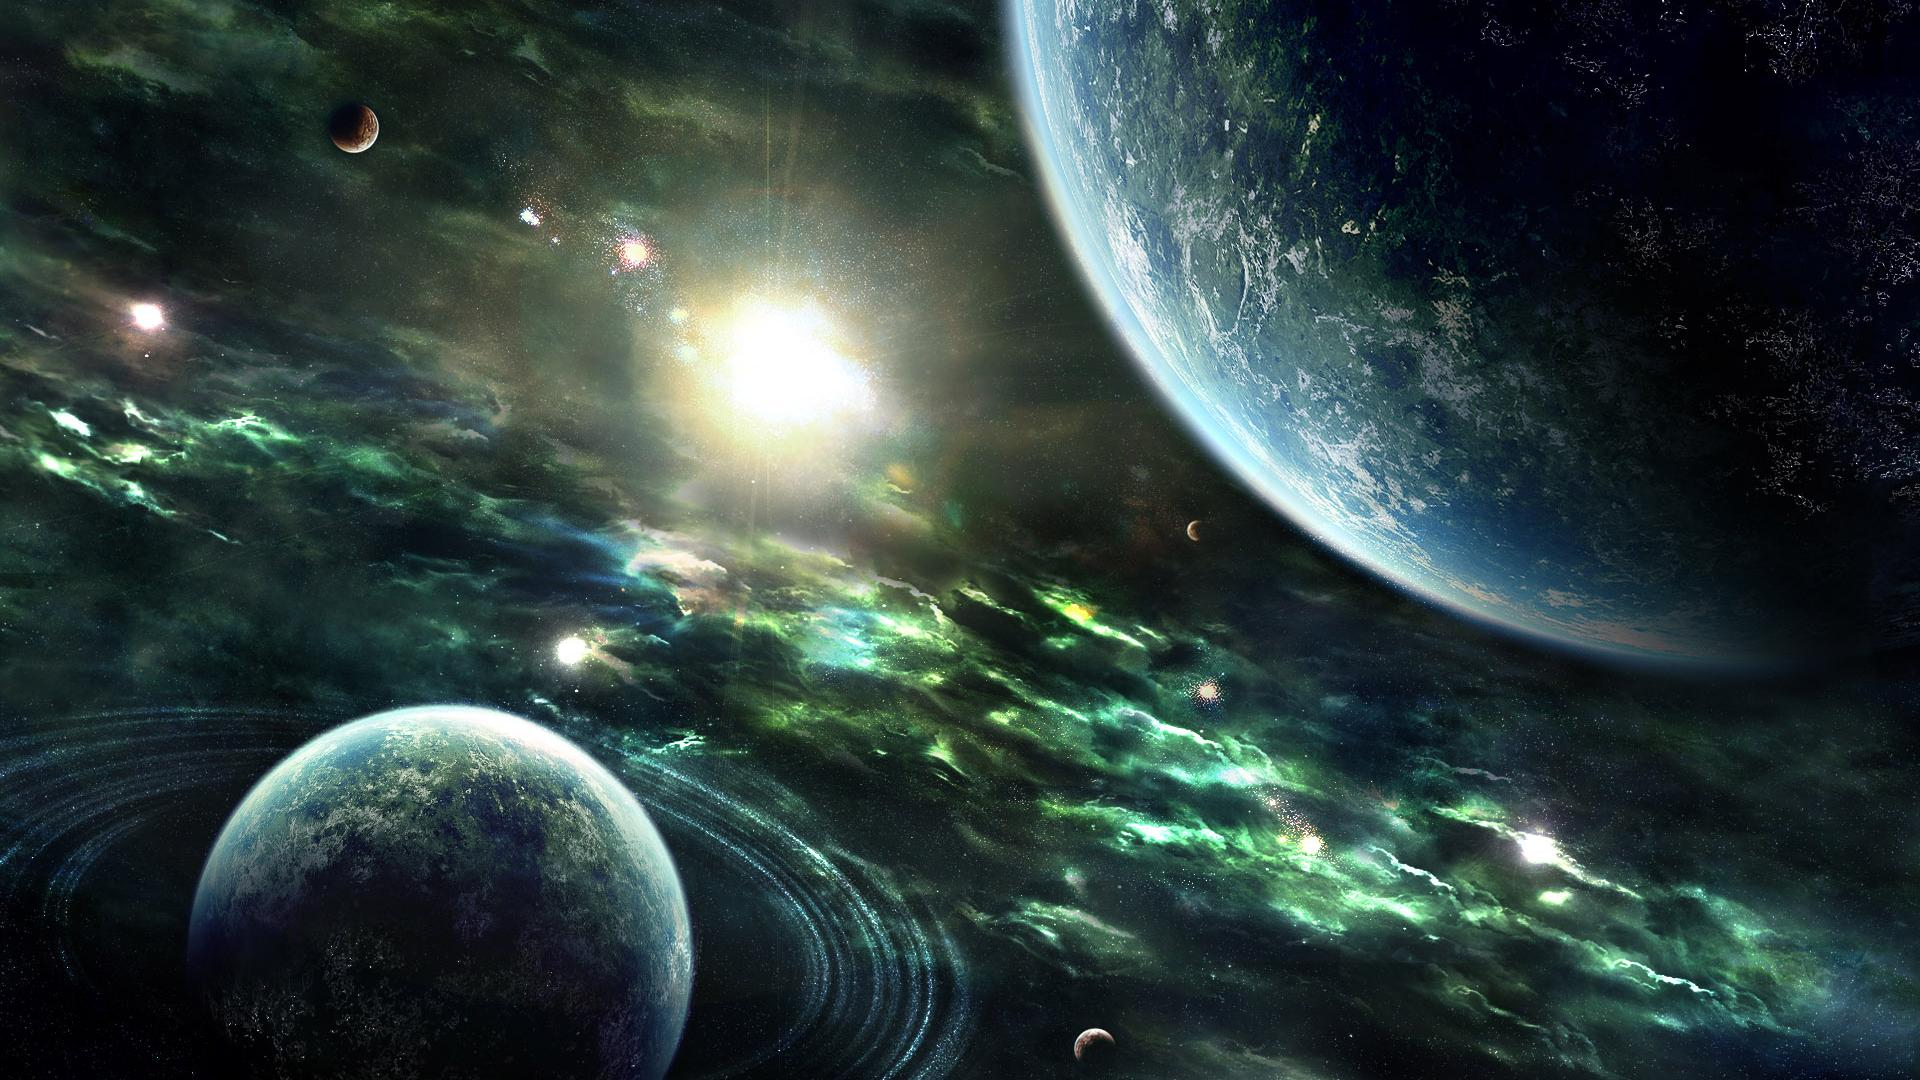 Cool HD Wallpapers Space Download Desktop   Fullsize Wallpaper 1920x1080